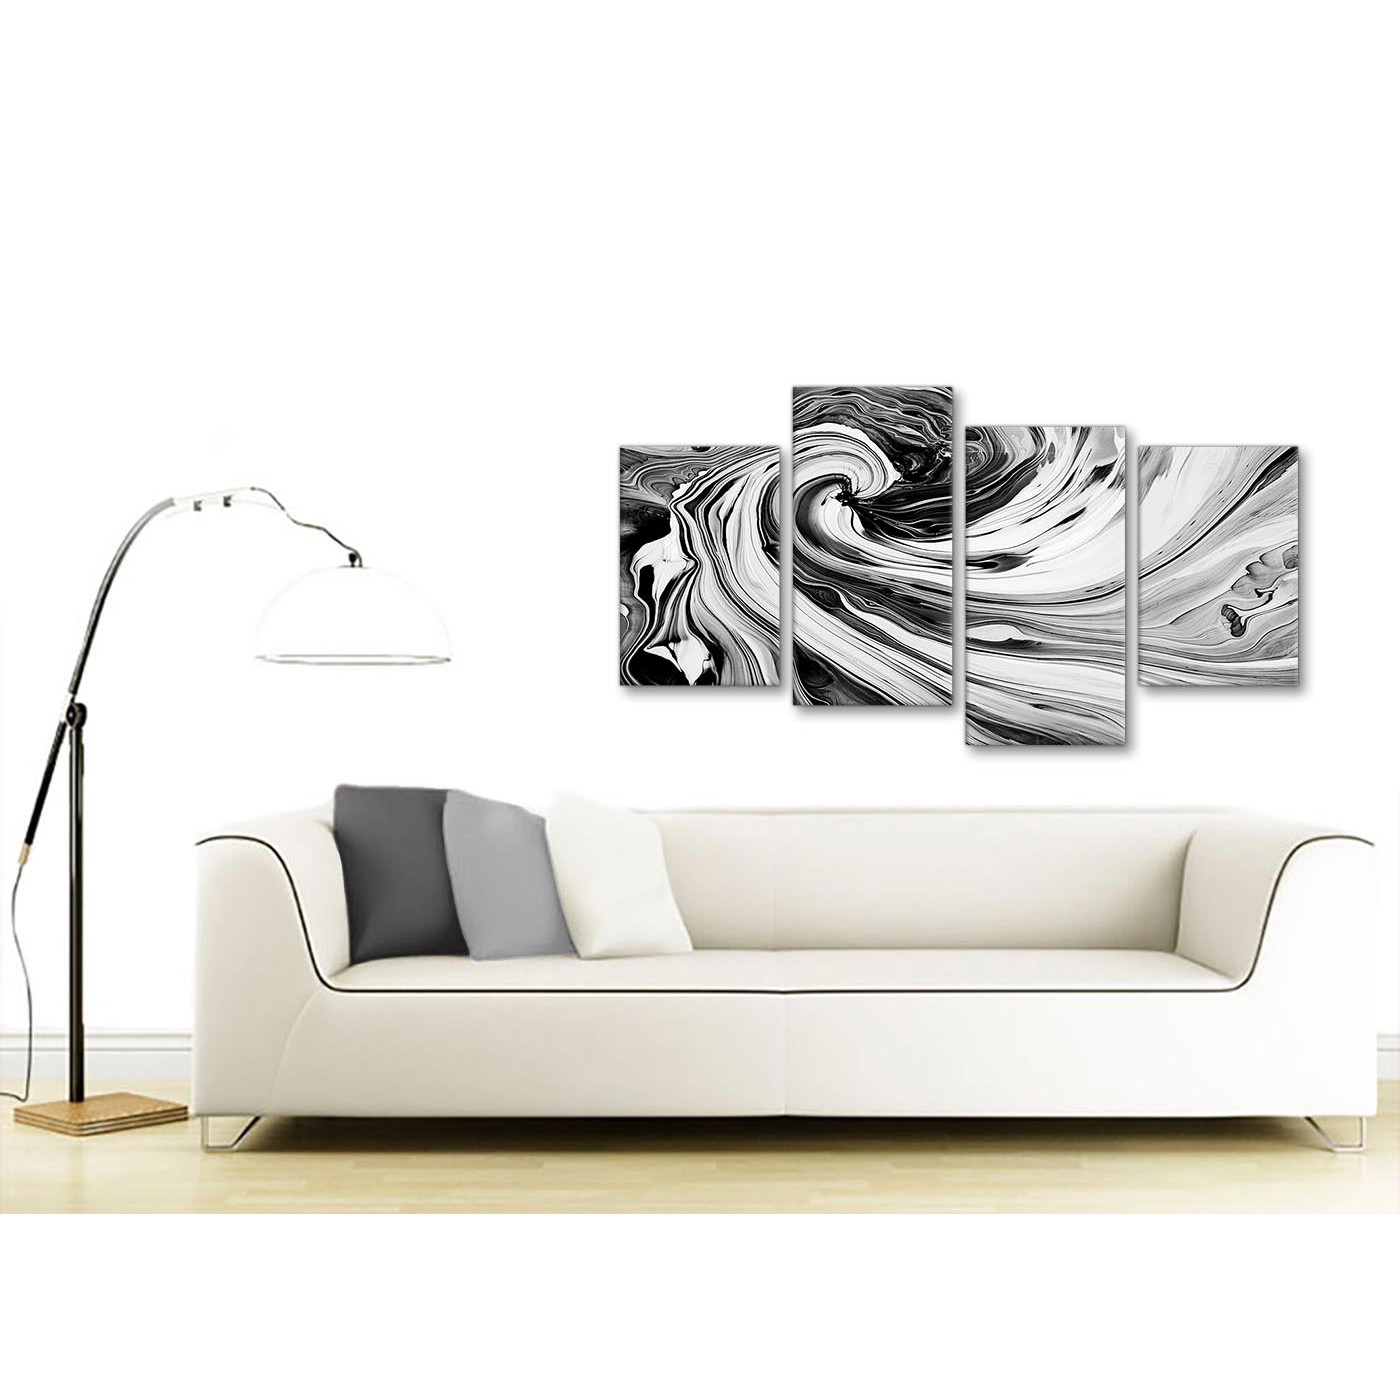 Large black white grey swirls modern abstract canvas wall for Sofa bed 130cm wide